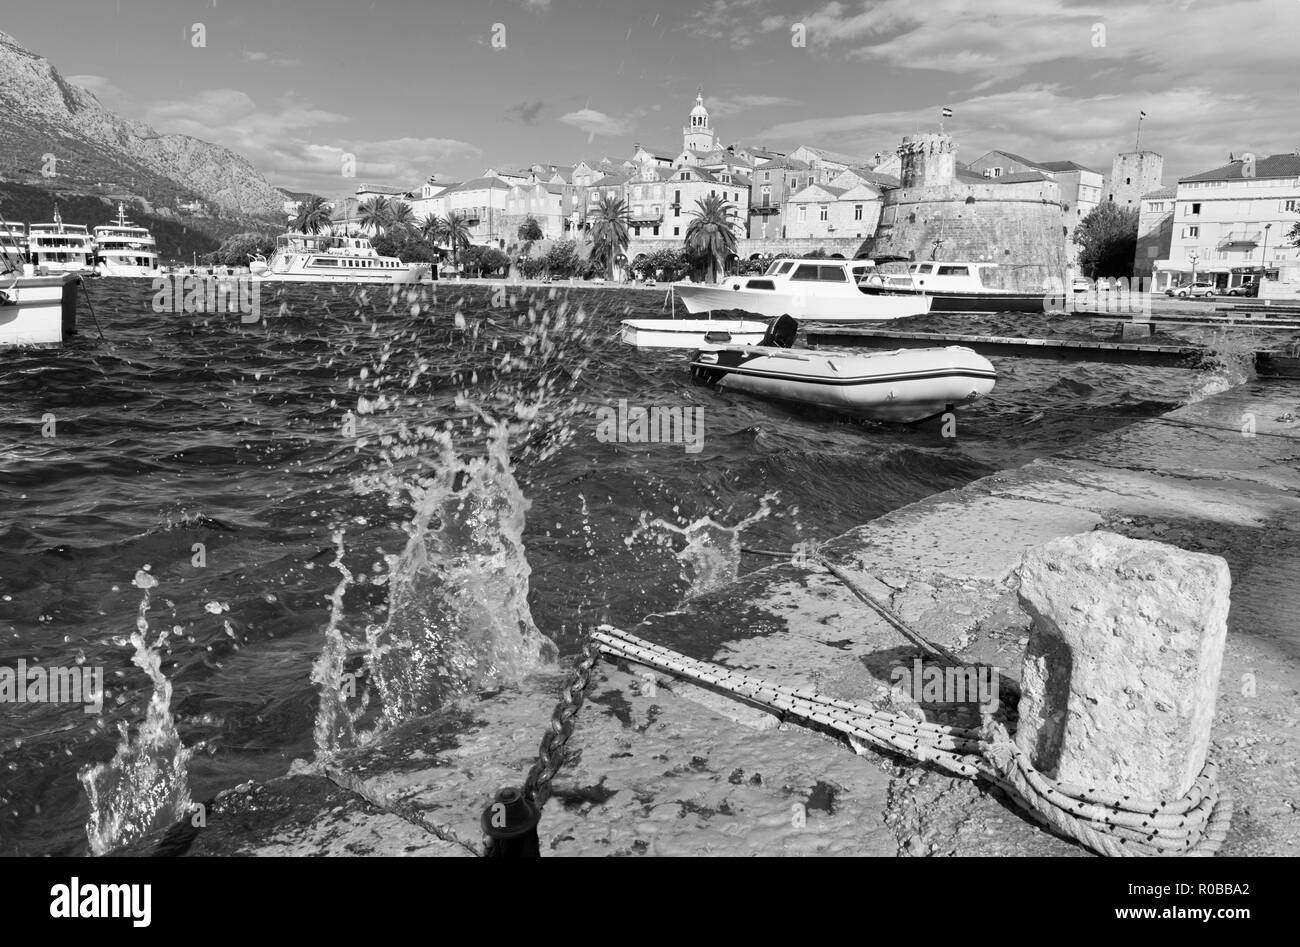 Croatia - The old town of Korcula. Stock Photo